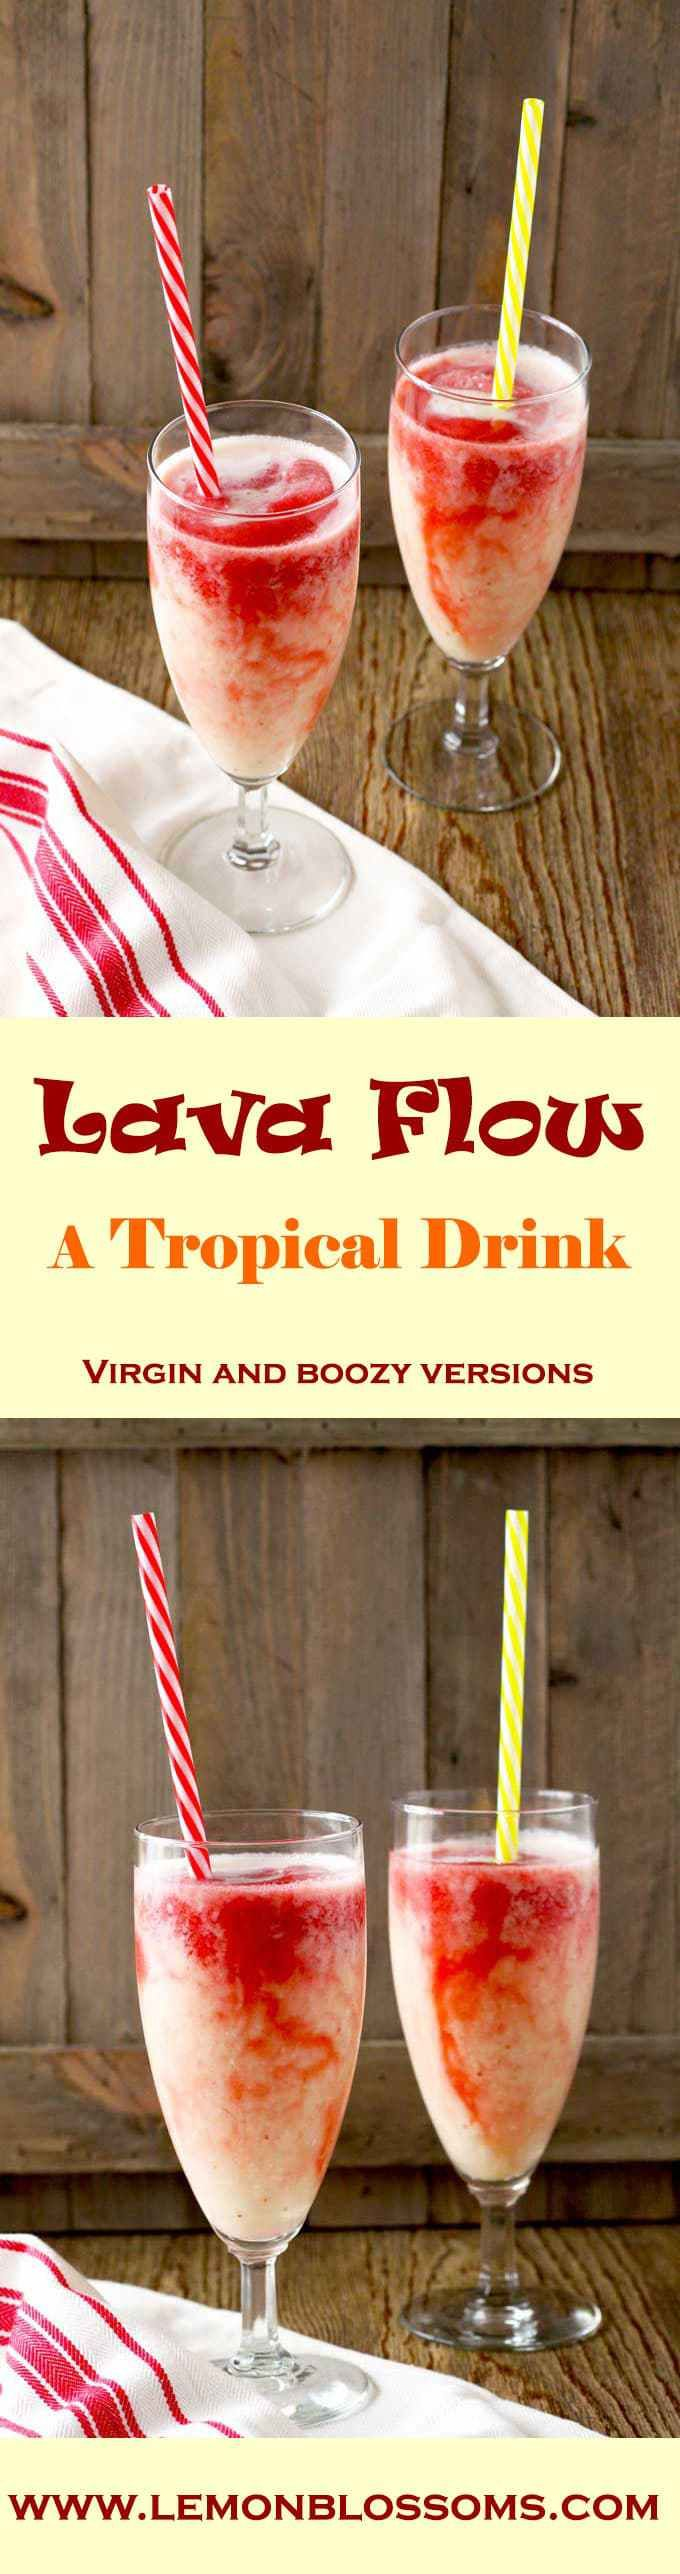 Lava Flow ~ a tropical drink that mixes pineapple, coconut and strawberries to create a sweet, delicious and refreshing drink. One sip will transport you to a beautiful tropical island. It's like paradise in a glass!!! Virgin and non-virgin recipes provided!